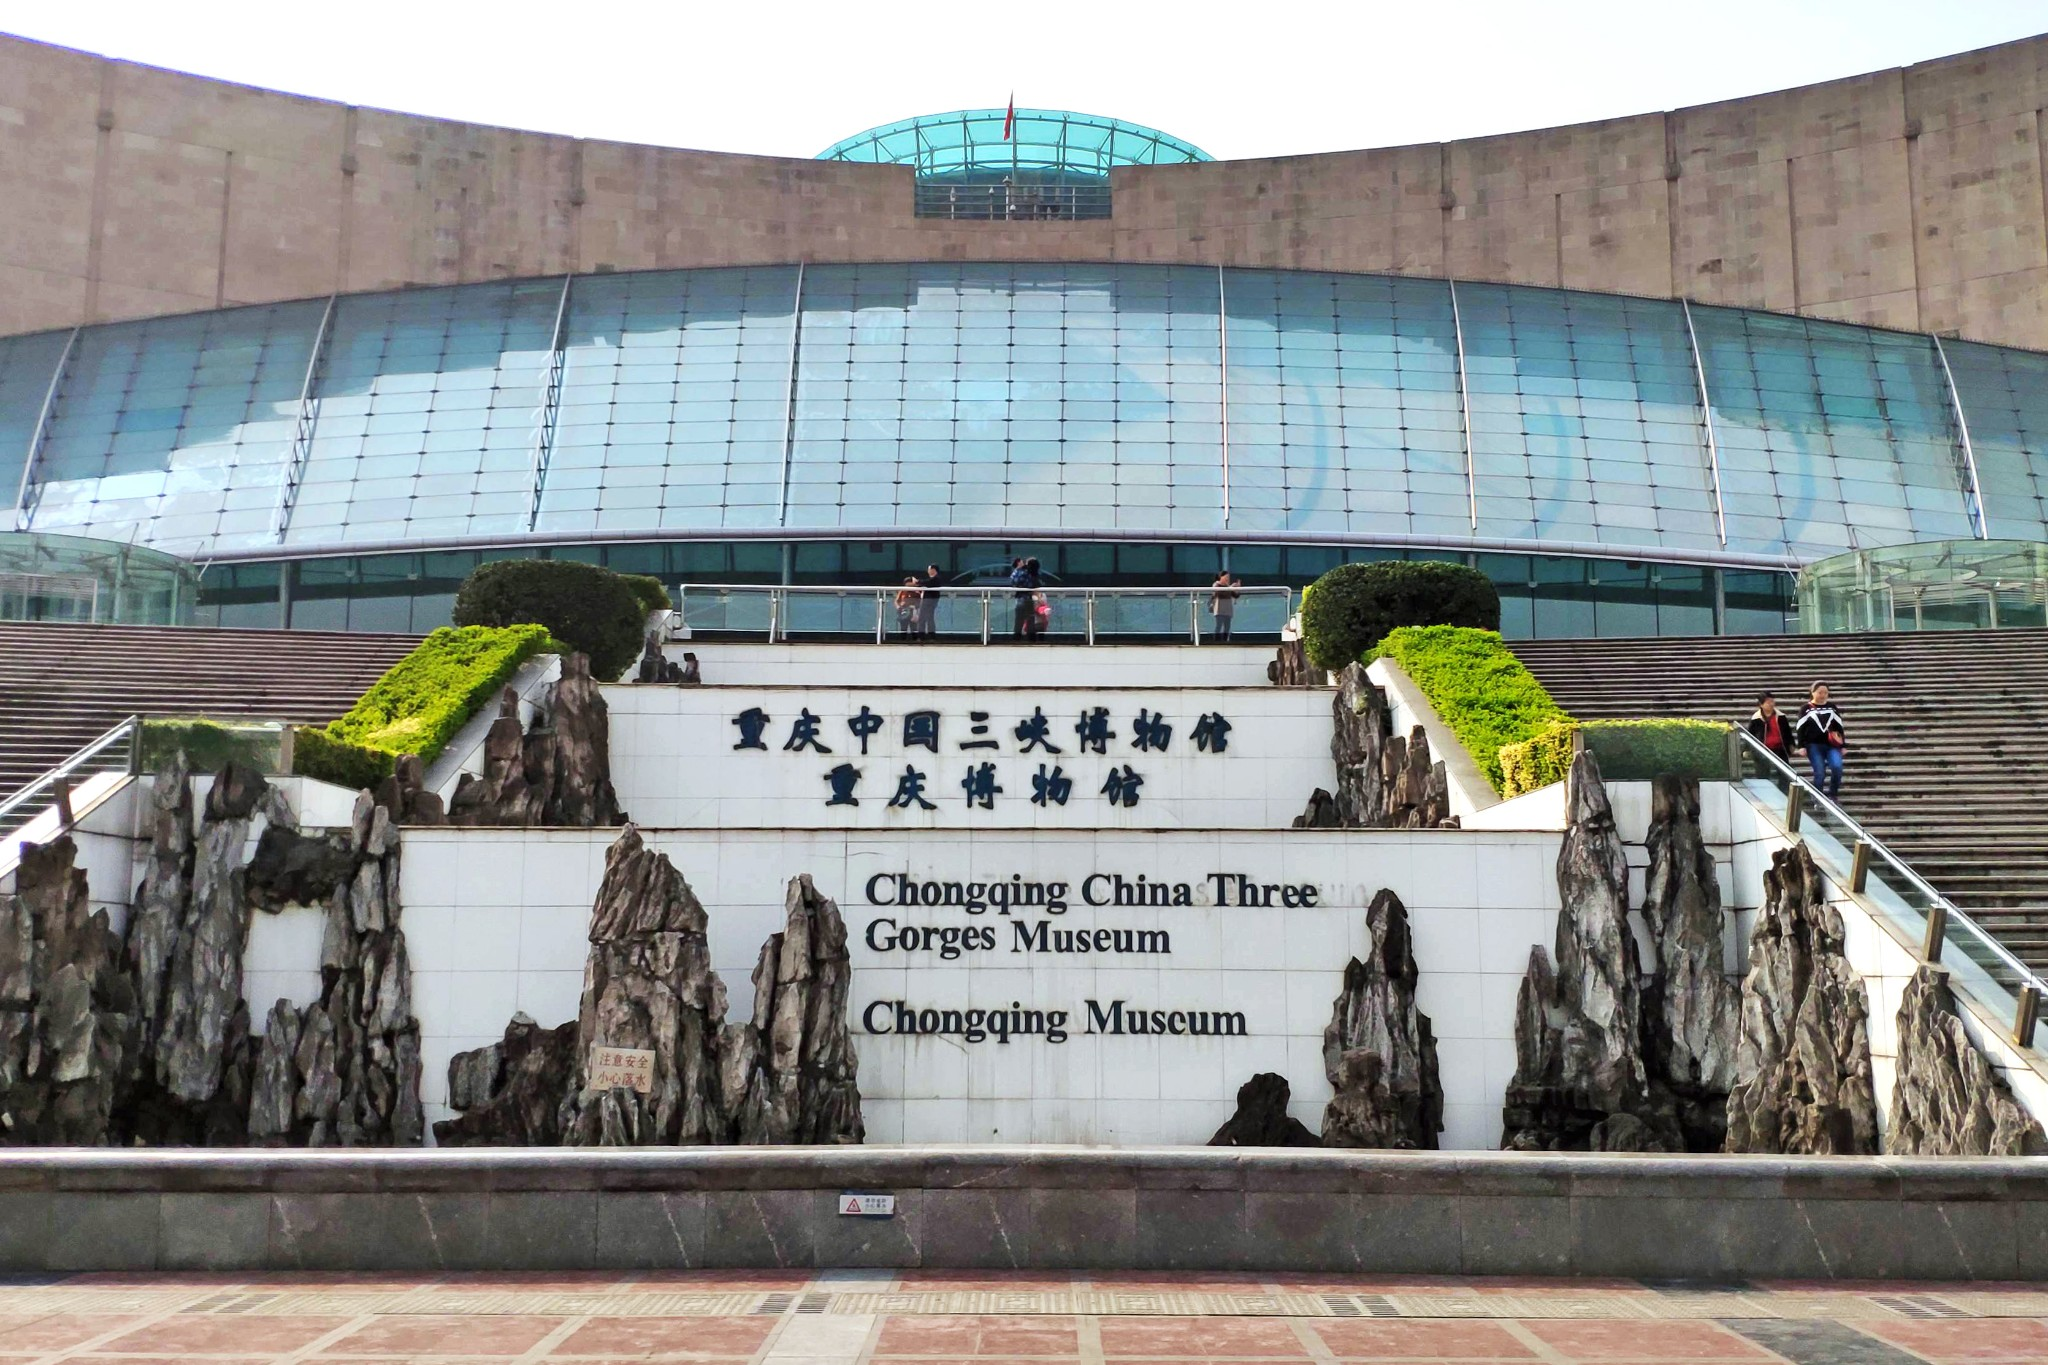 ChongQing Three Gorges Museum